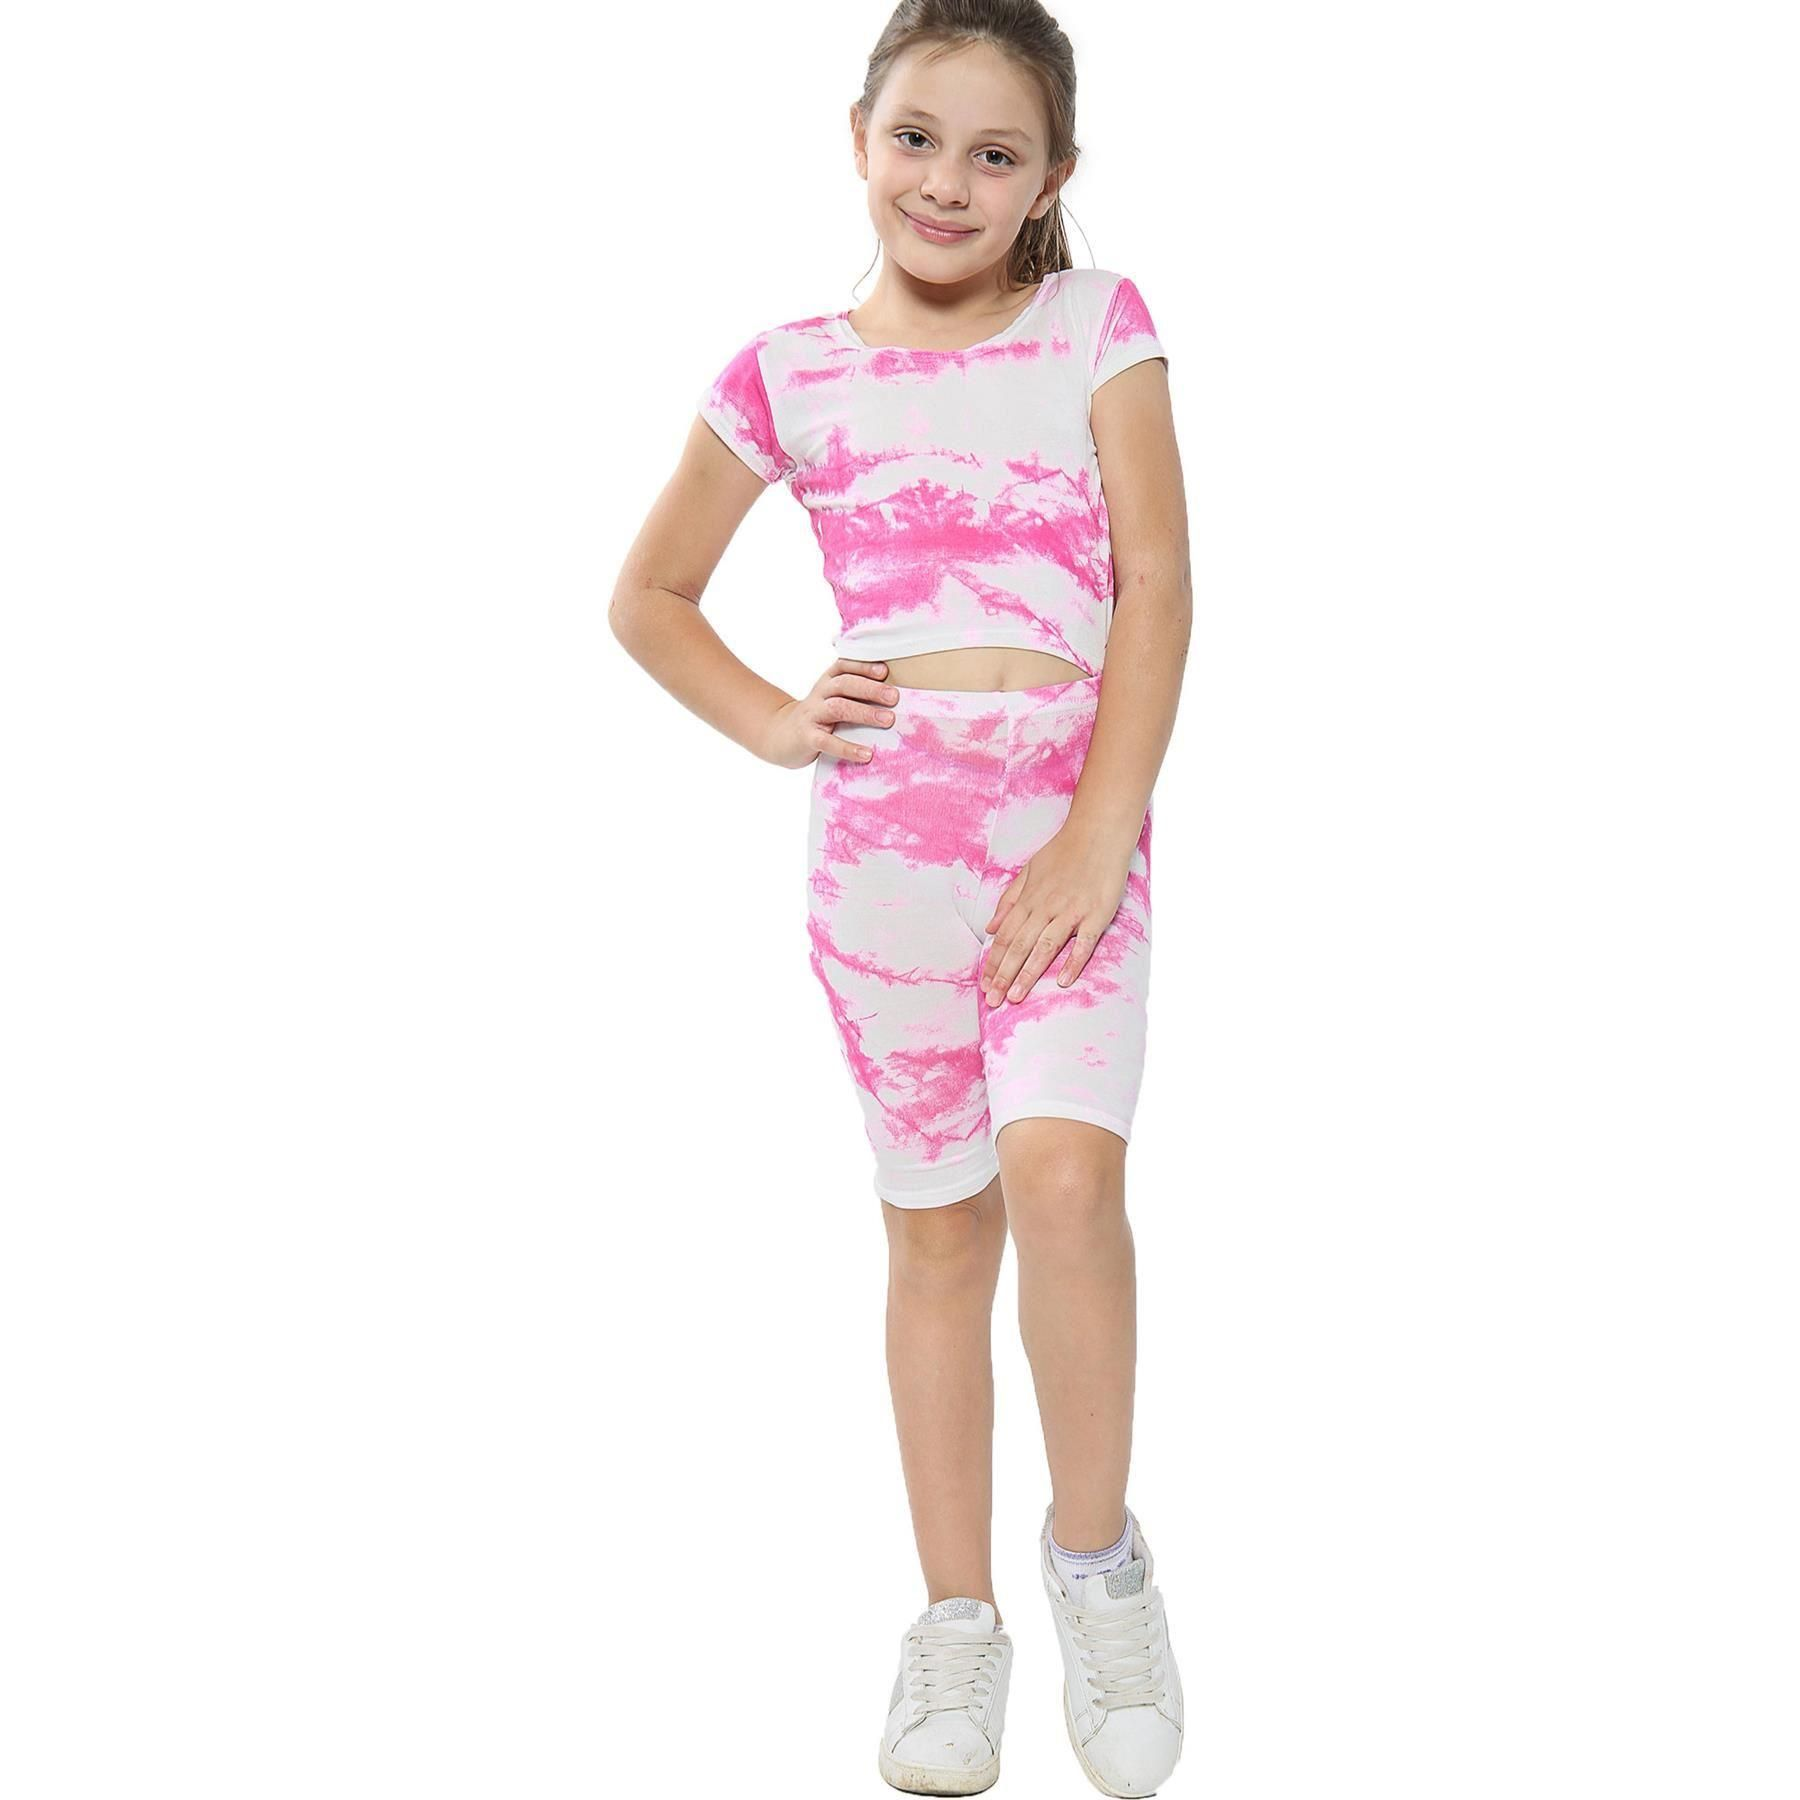 Kids Girls Crop Top /& Cycling Shorts Tie Dye Print Summer Outfit Clothing Sets